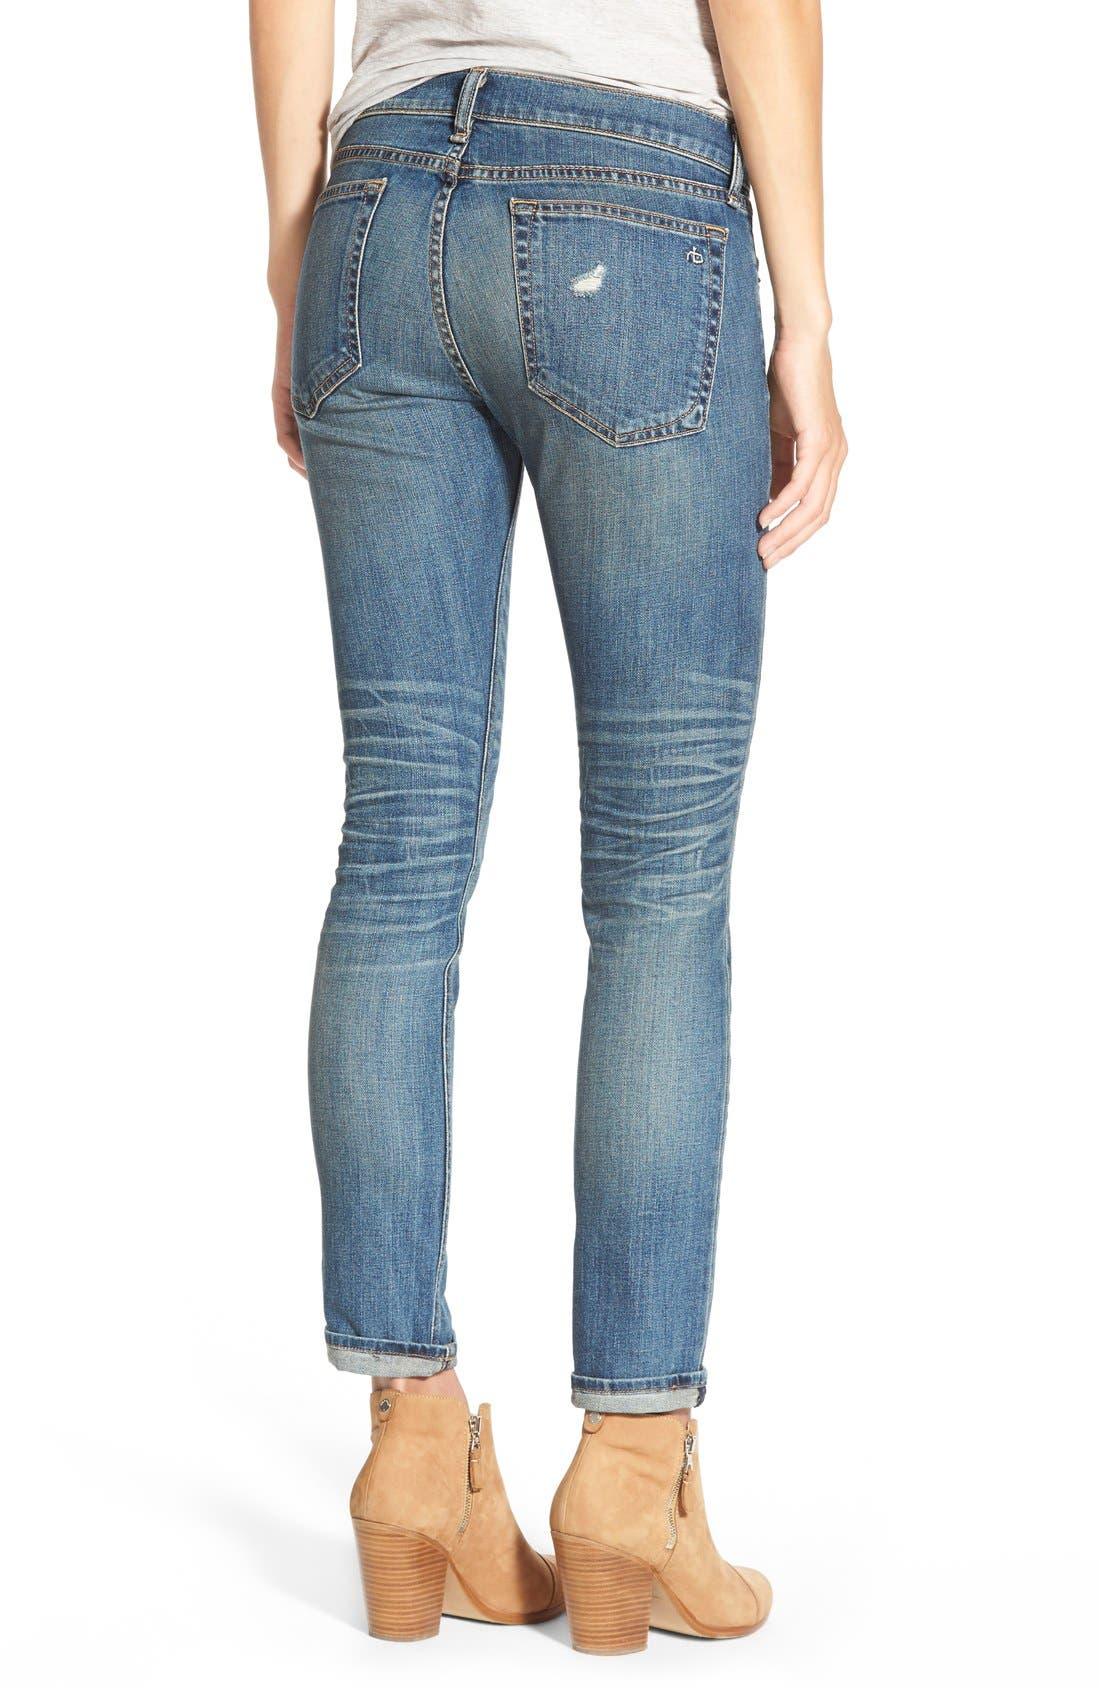 Alternate Image 2  - rag & bone/JEAN 'The Dre' Slim Fit Boyfriend Jeans (Ada)